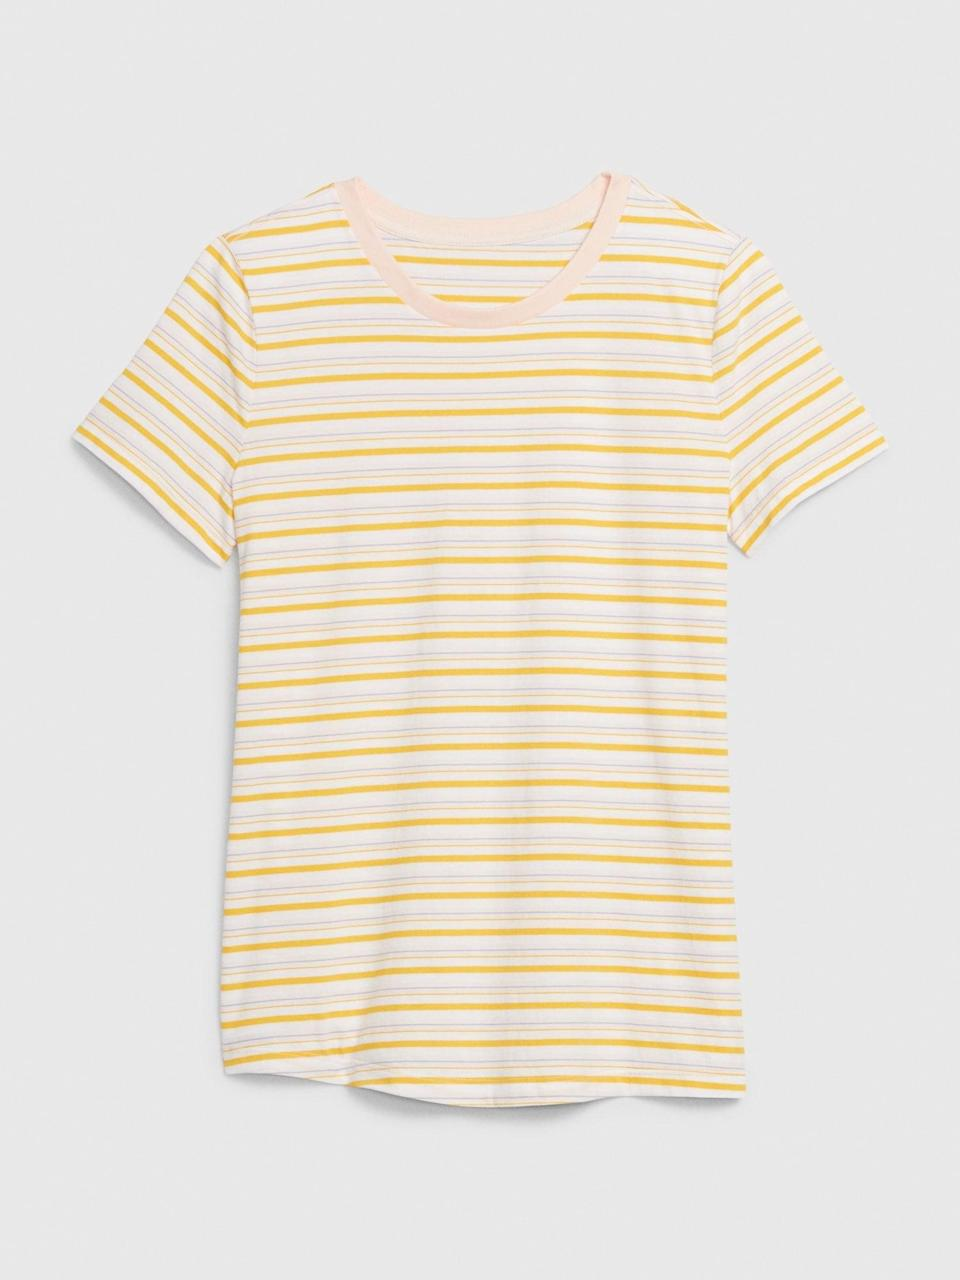 <p>We love the vintage vibes of this <span>Gap Vintage Wash Stripe Crewneck T-Shirt</span> ($15). Pair this with a denim skirt and high-tops or penny loafers for a 70s style.</p>